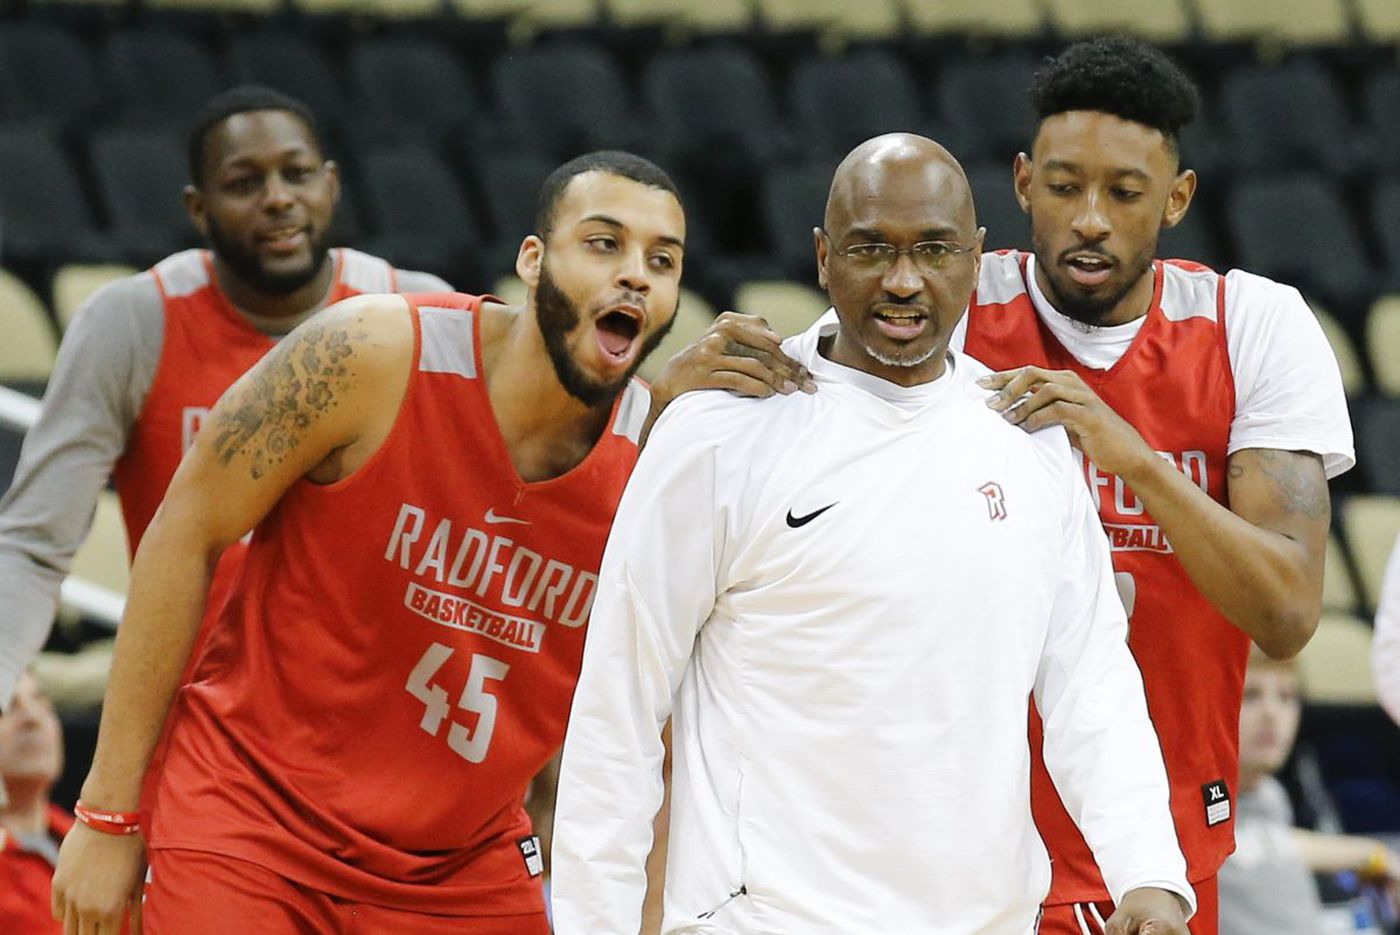 Radford dreaming loudly about game with Villanova in March Madness